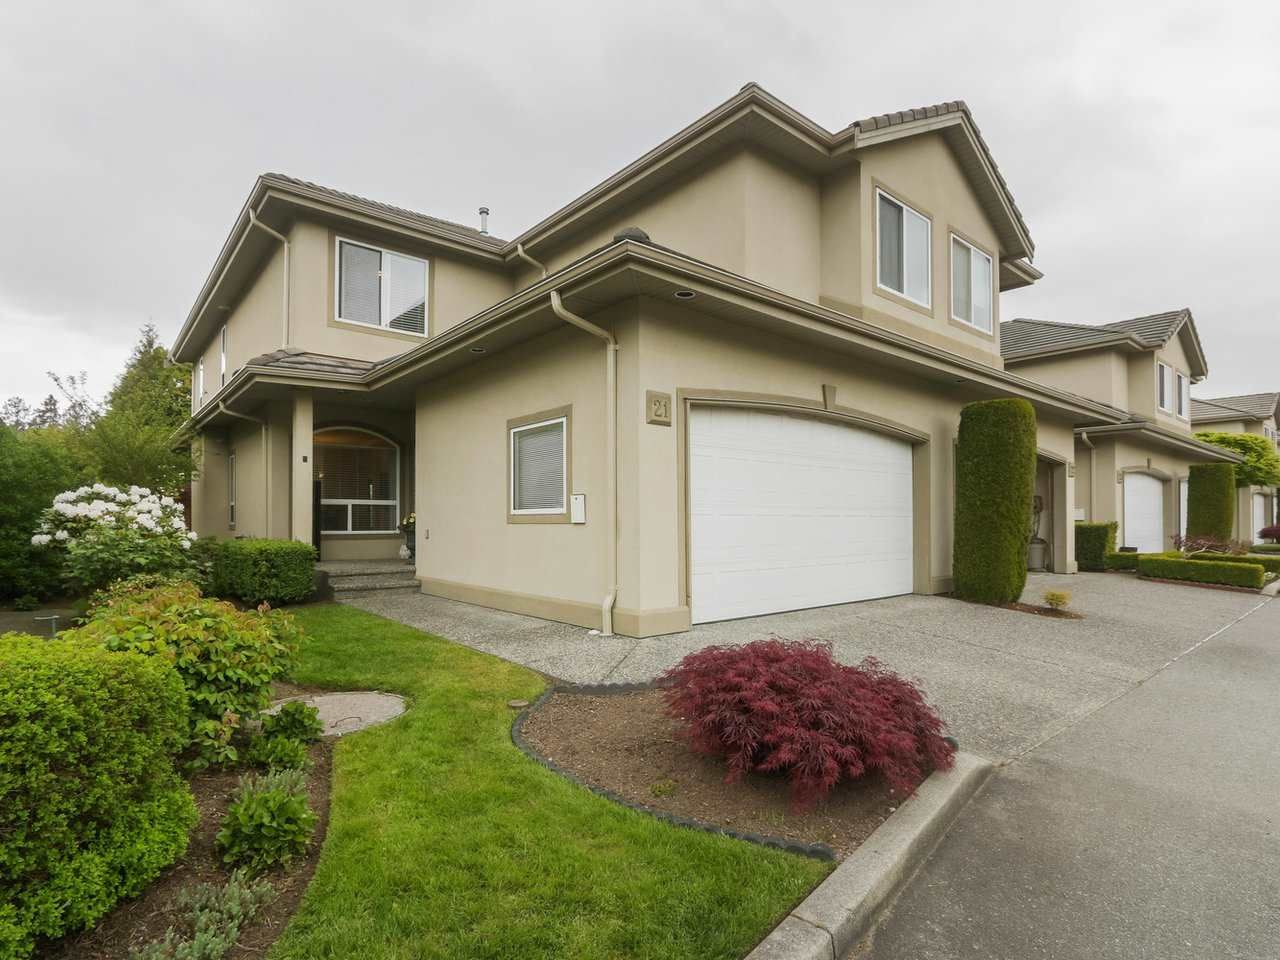 """Photo 1: Photos: 21 998 RIVERSIDE Drive in Port Coquitlam: Riverwood Townhouse for sale in """"PARKSIDE PLACE"""" : MLS®# R2371728"""